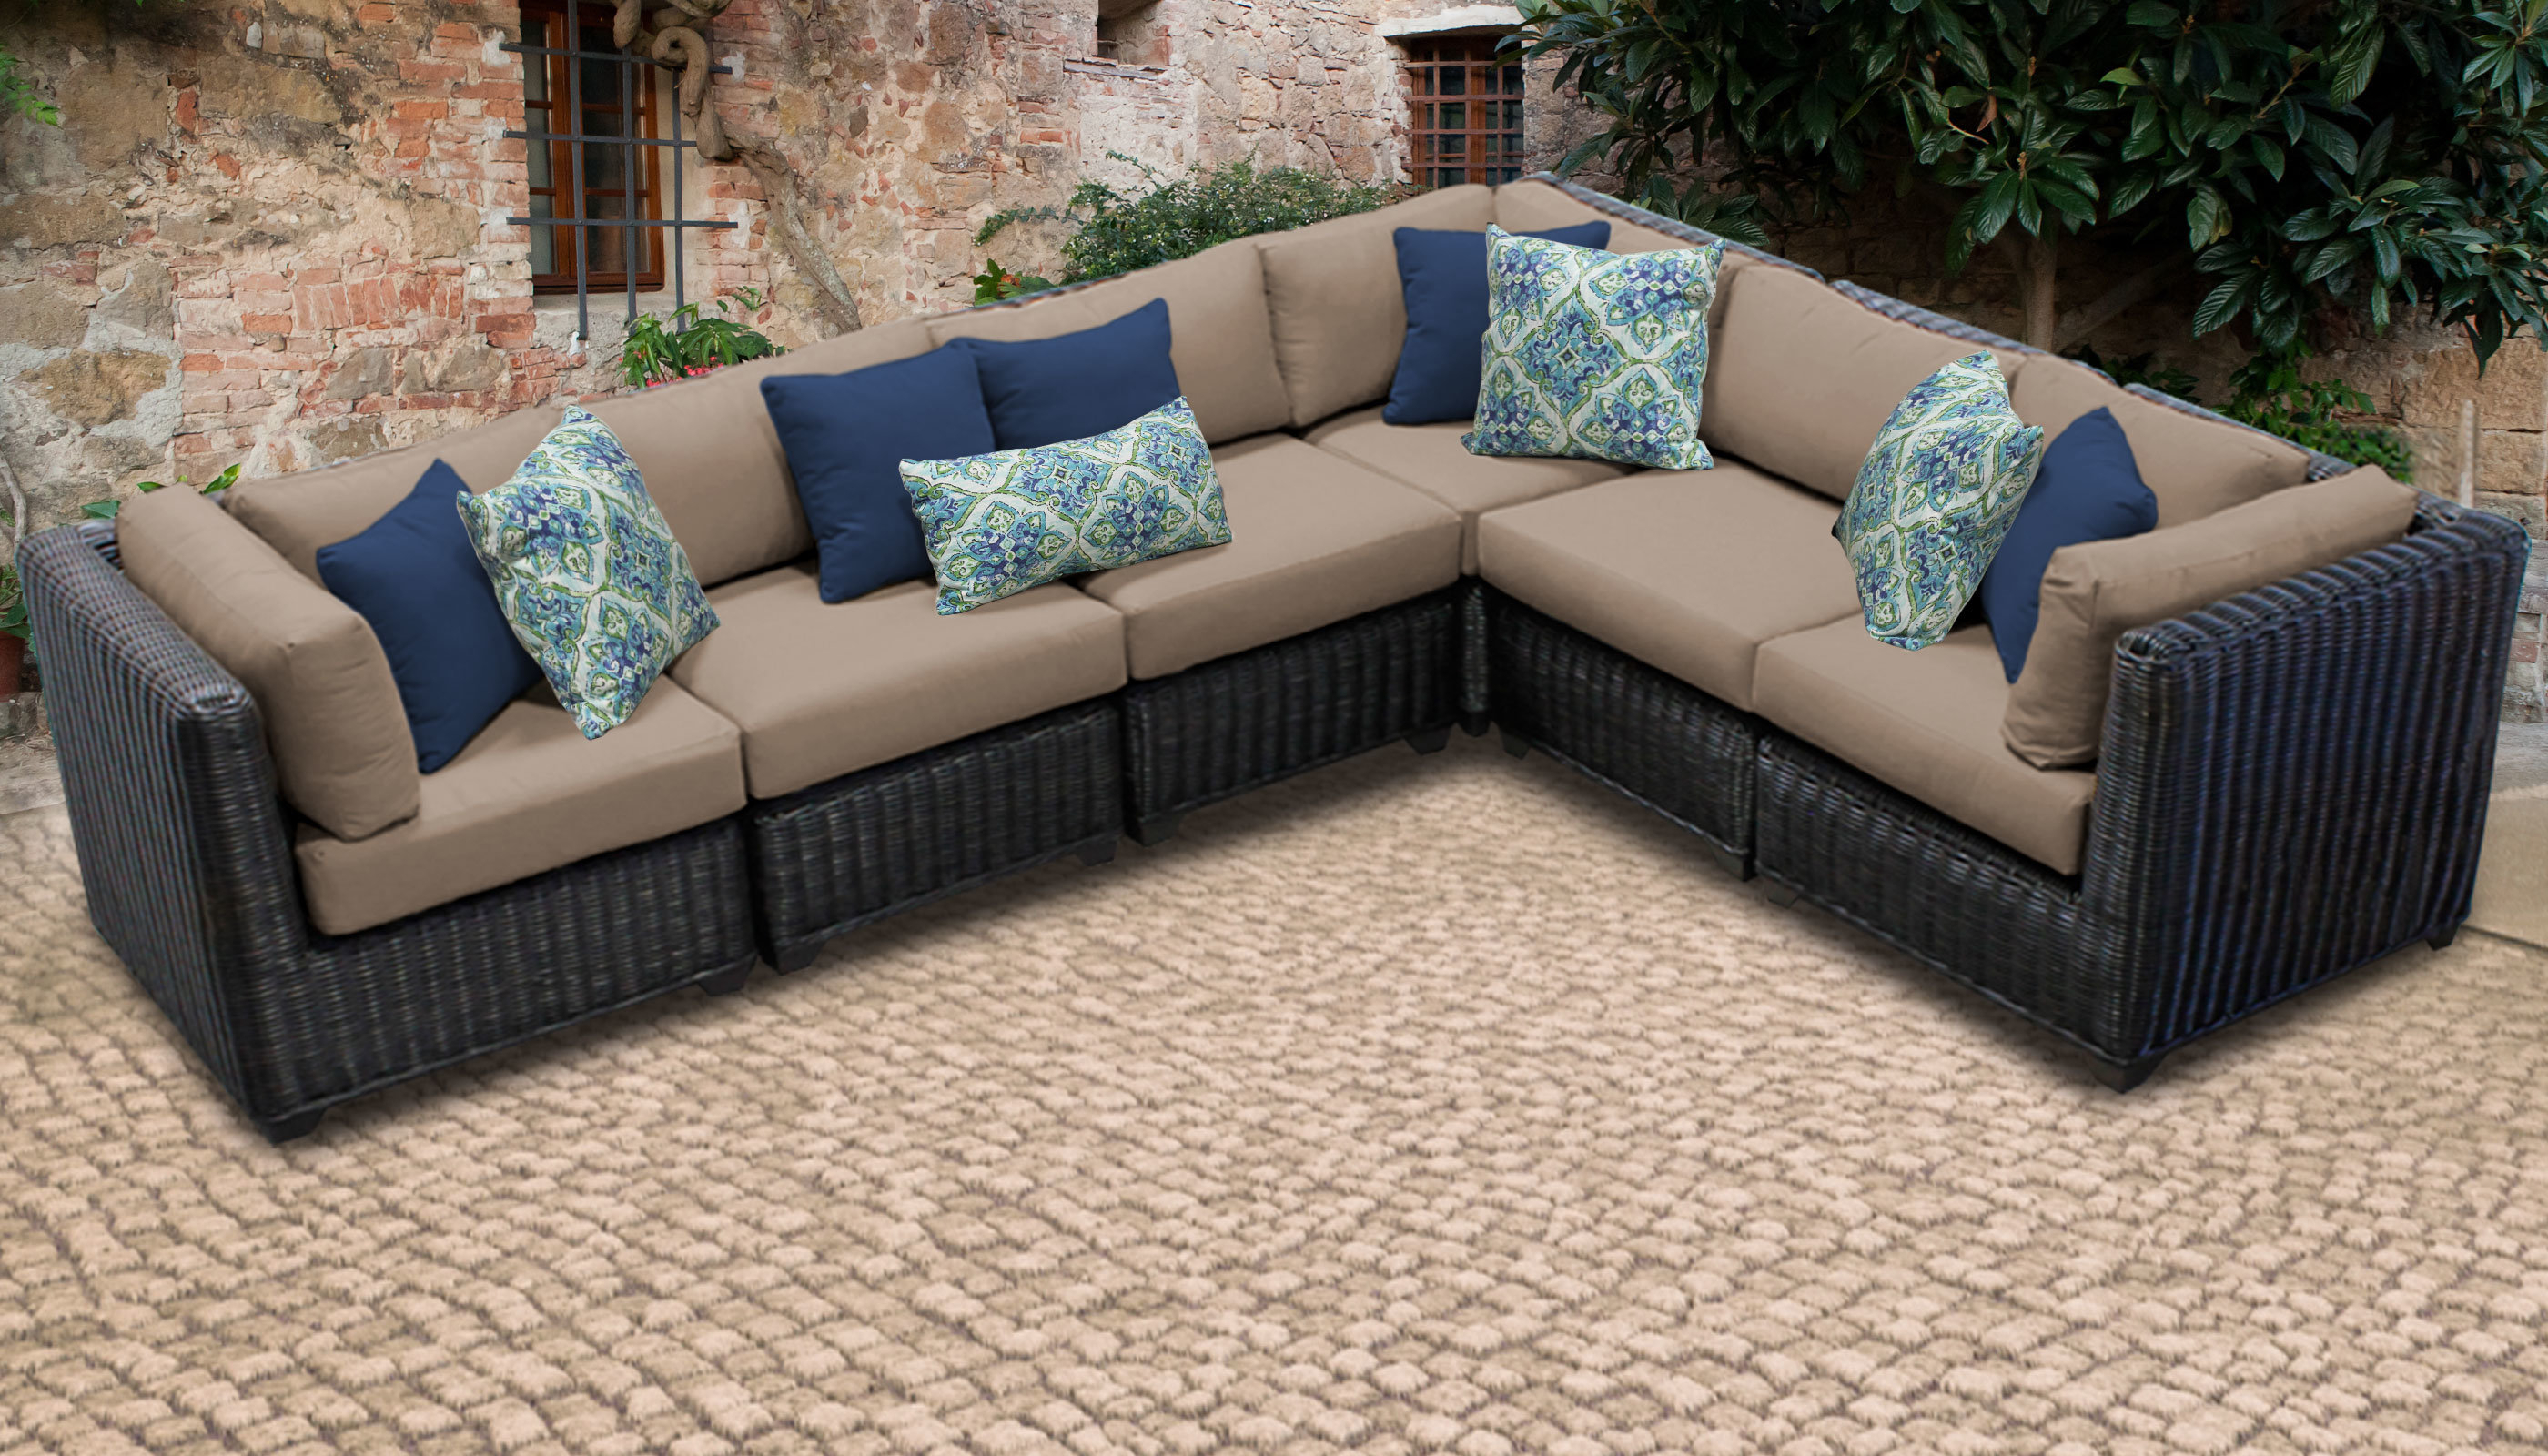 Most Popular Mejia Wicker Patio Sectional With Cushions For Madison Avenue Patio Sectionals With Sunbrella Cushions (View 12 of 20)